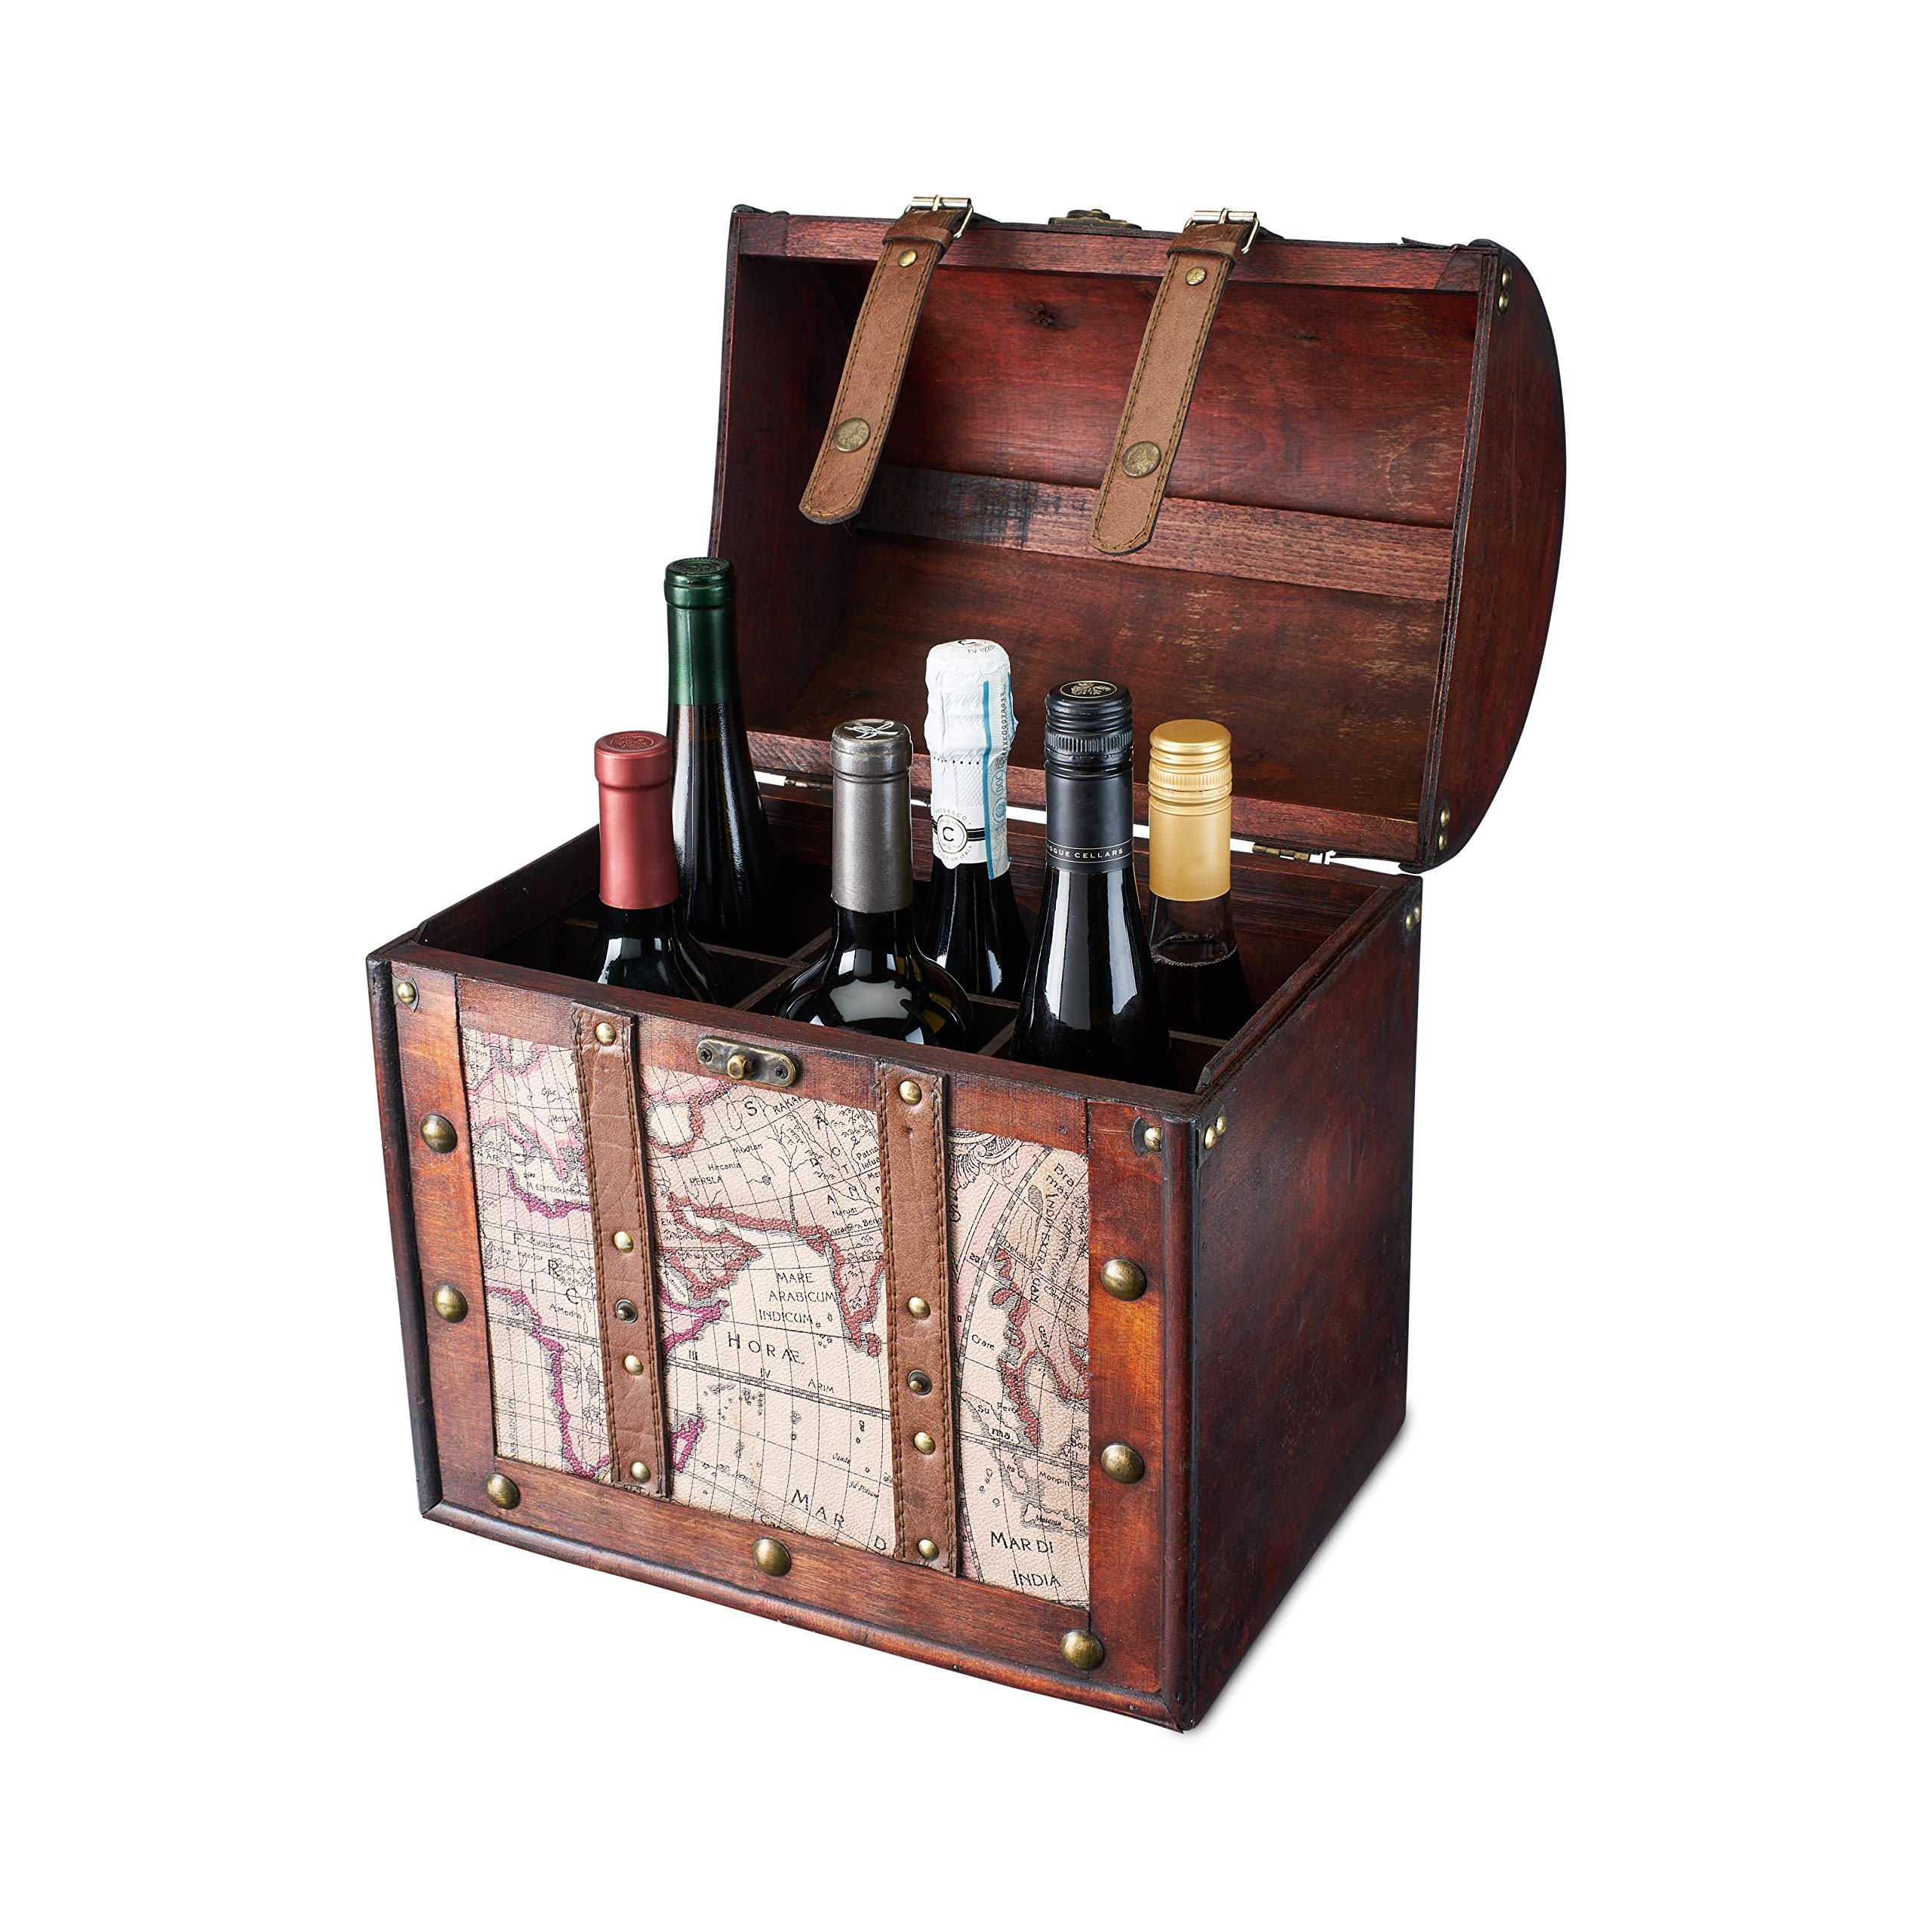 Chateau 6 Bottle Old World Wooden Wine Box by Twine by Twine (Image #1)